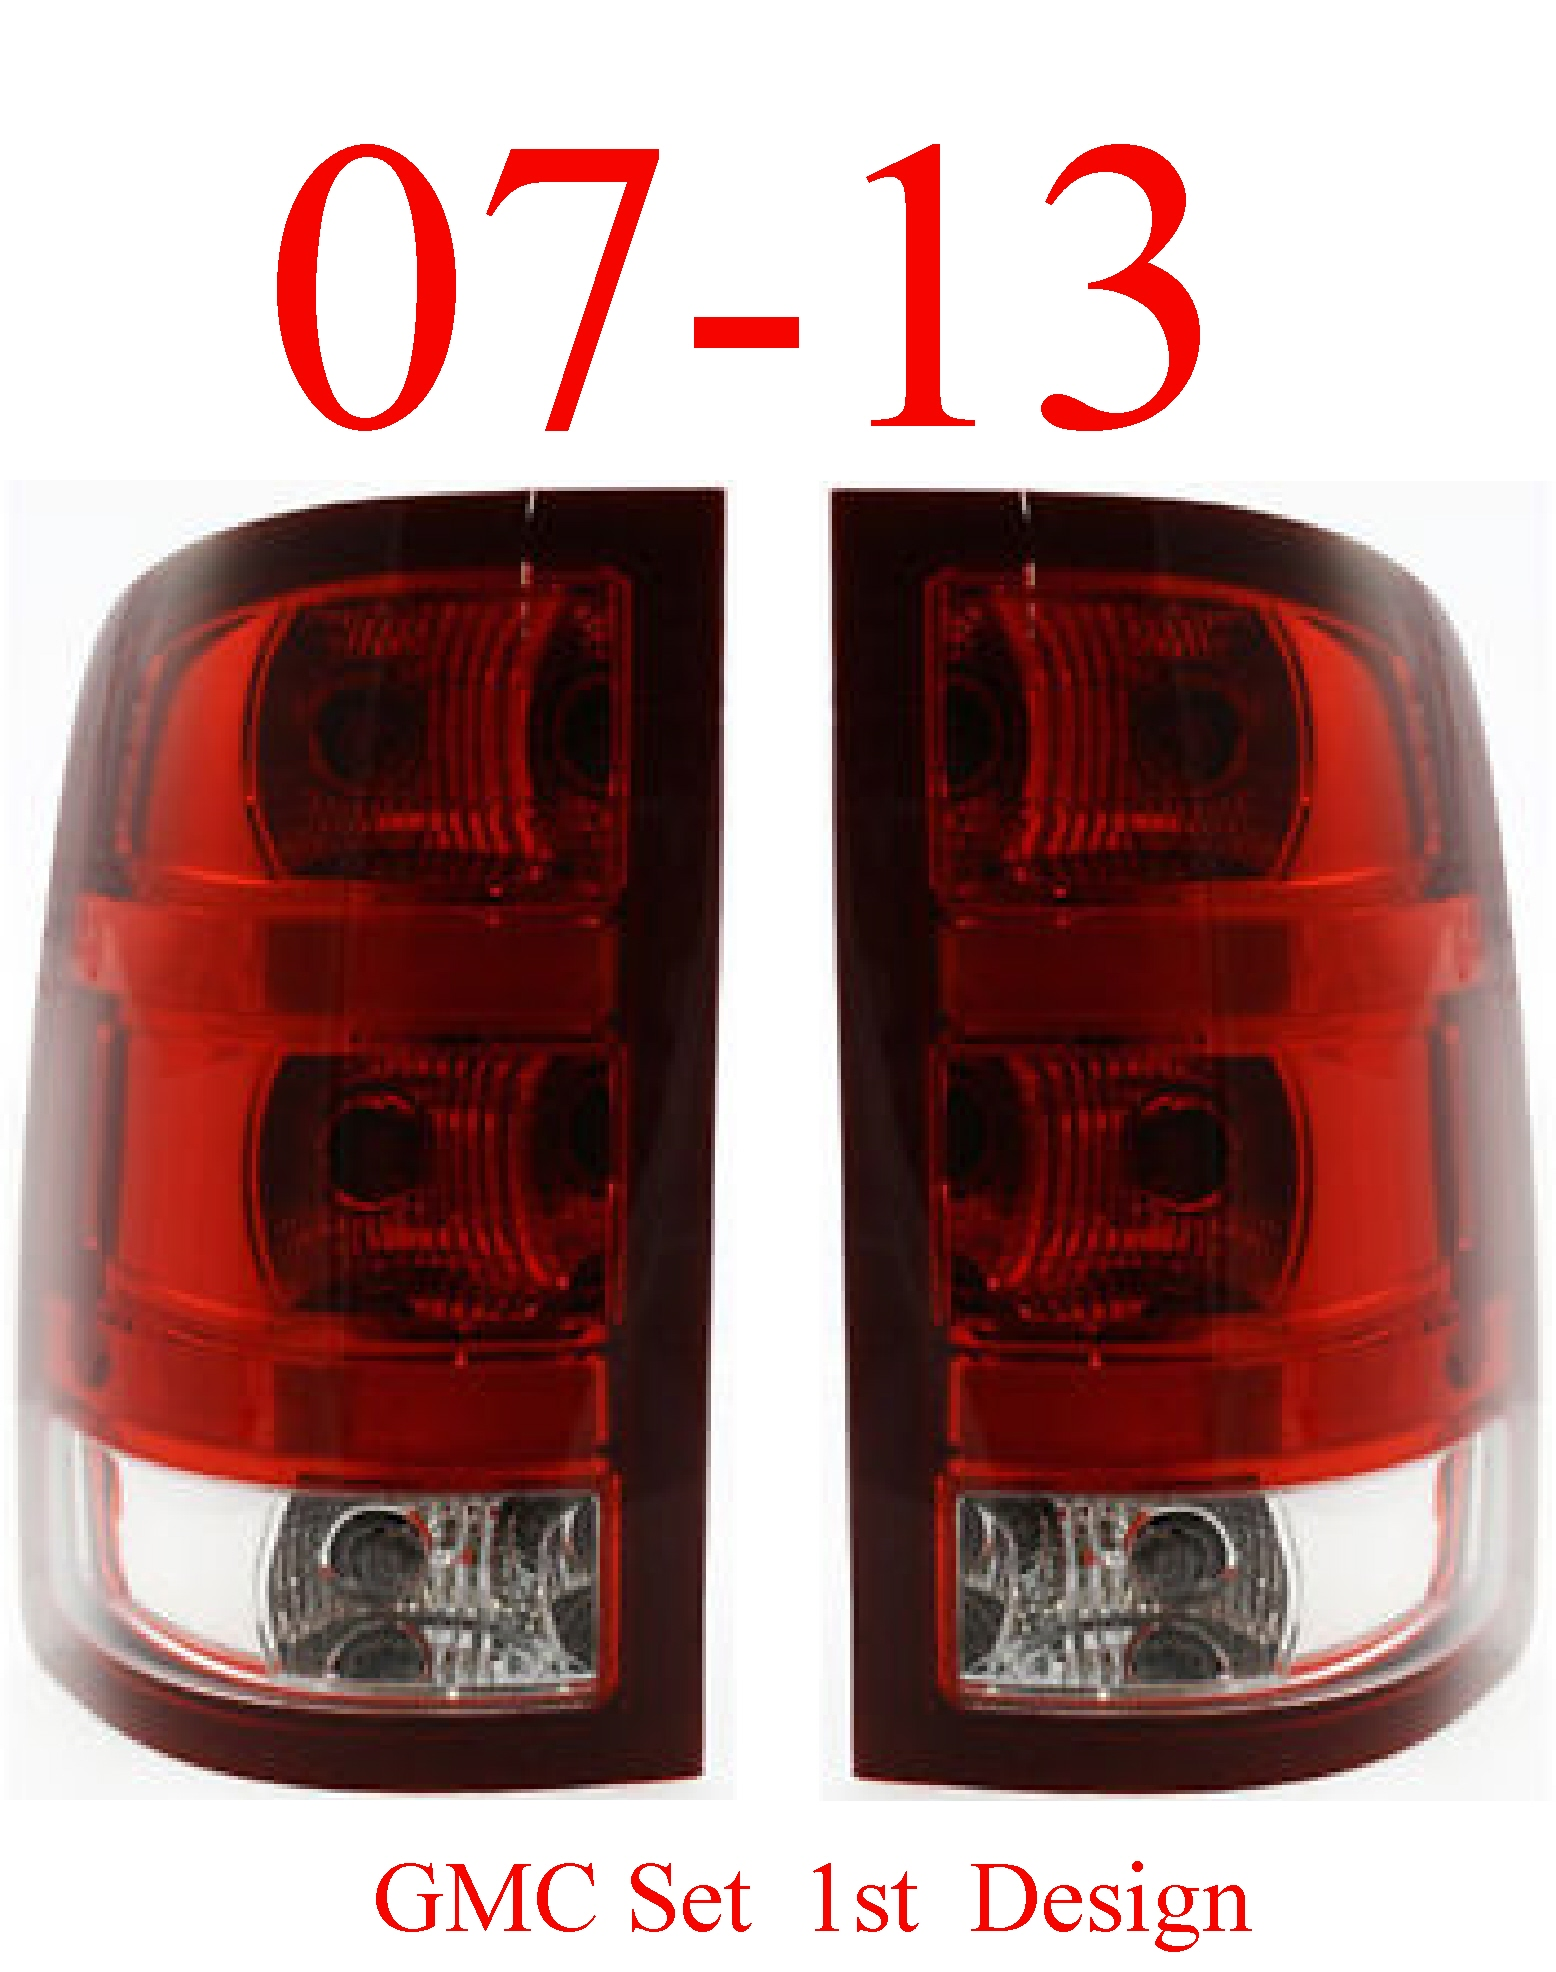 07-13 GMC Tail Light Set 1st Design